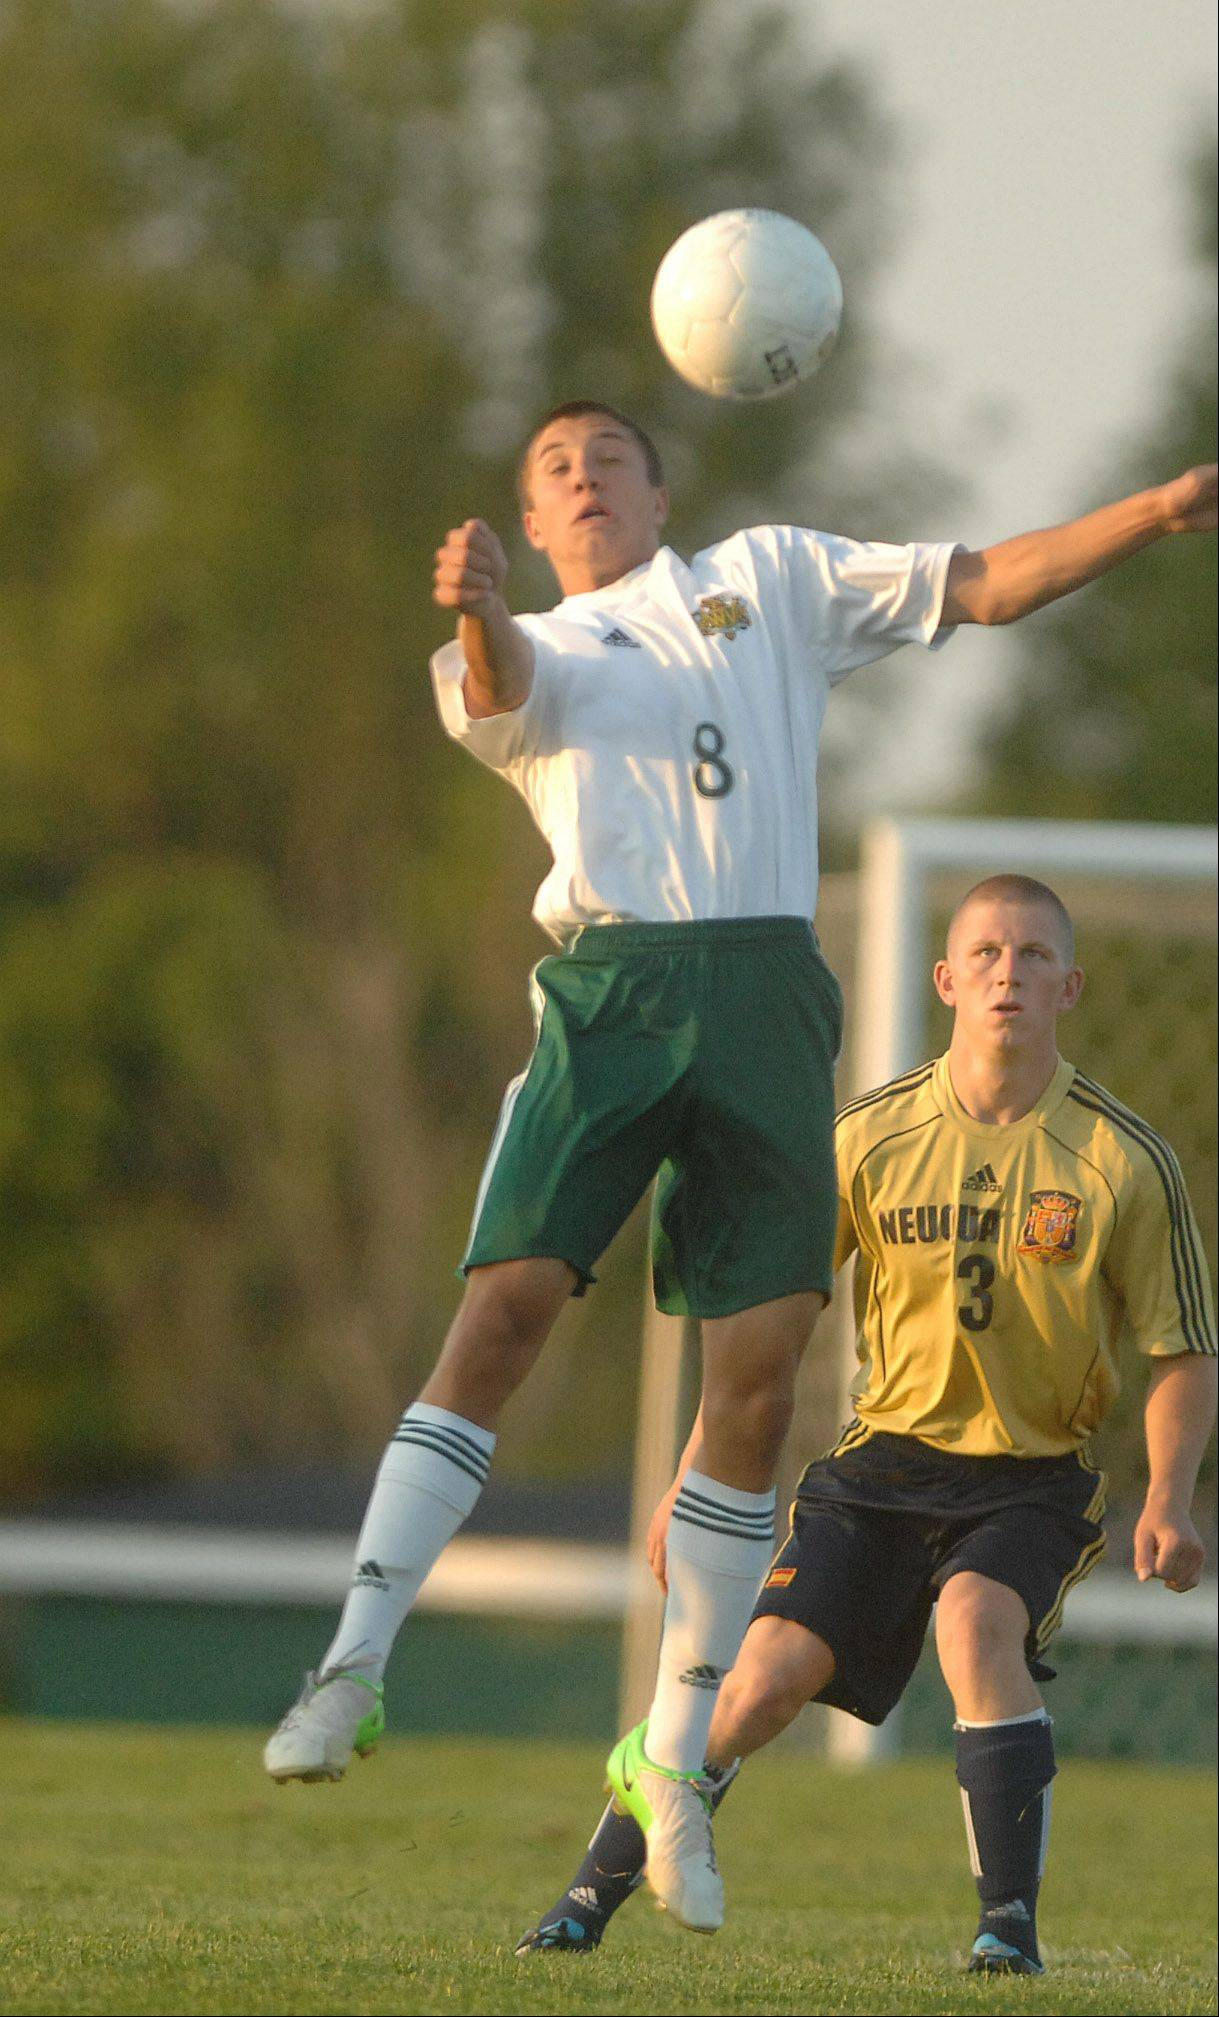 Casey Bucz of Waubonsie goes up for a ball during the Neuqua Valley at Waubonsie Valley boys Soccer Thursday.